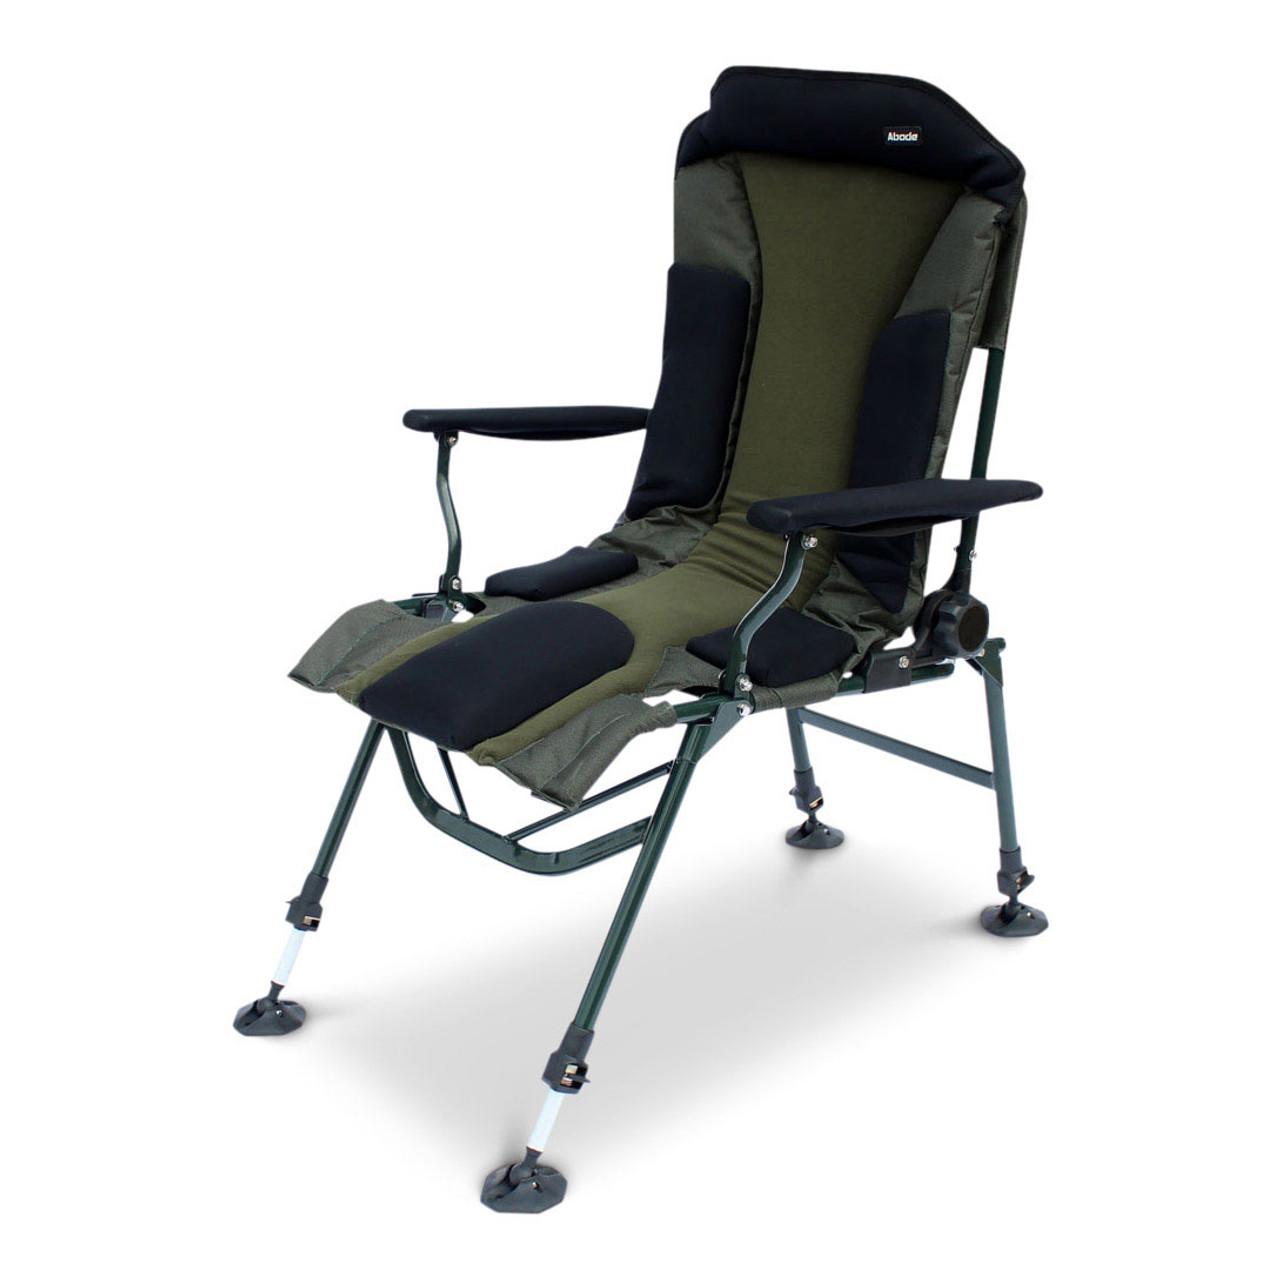 fishing chair add ons best chairs geneva glider abode carp camping folding easy arm long leg